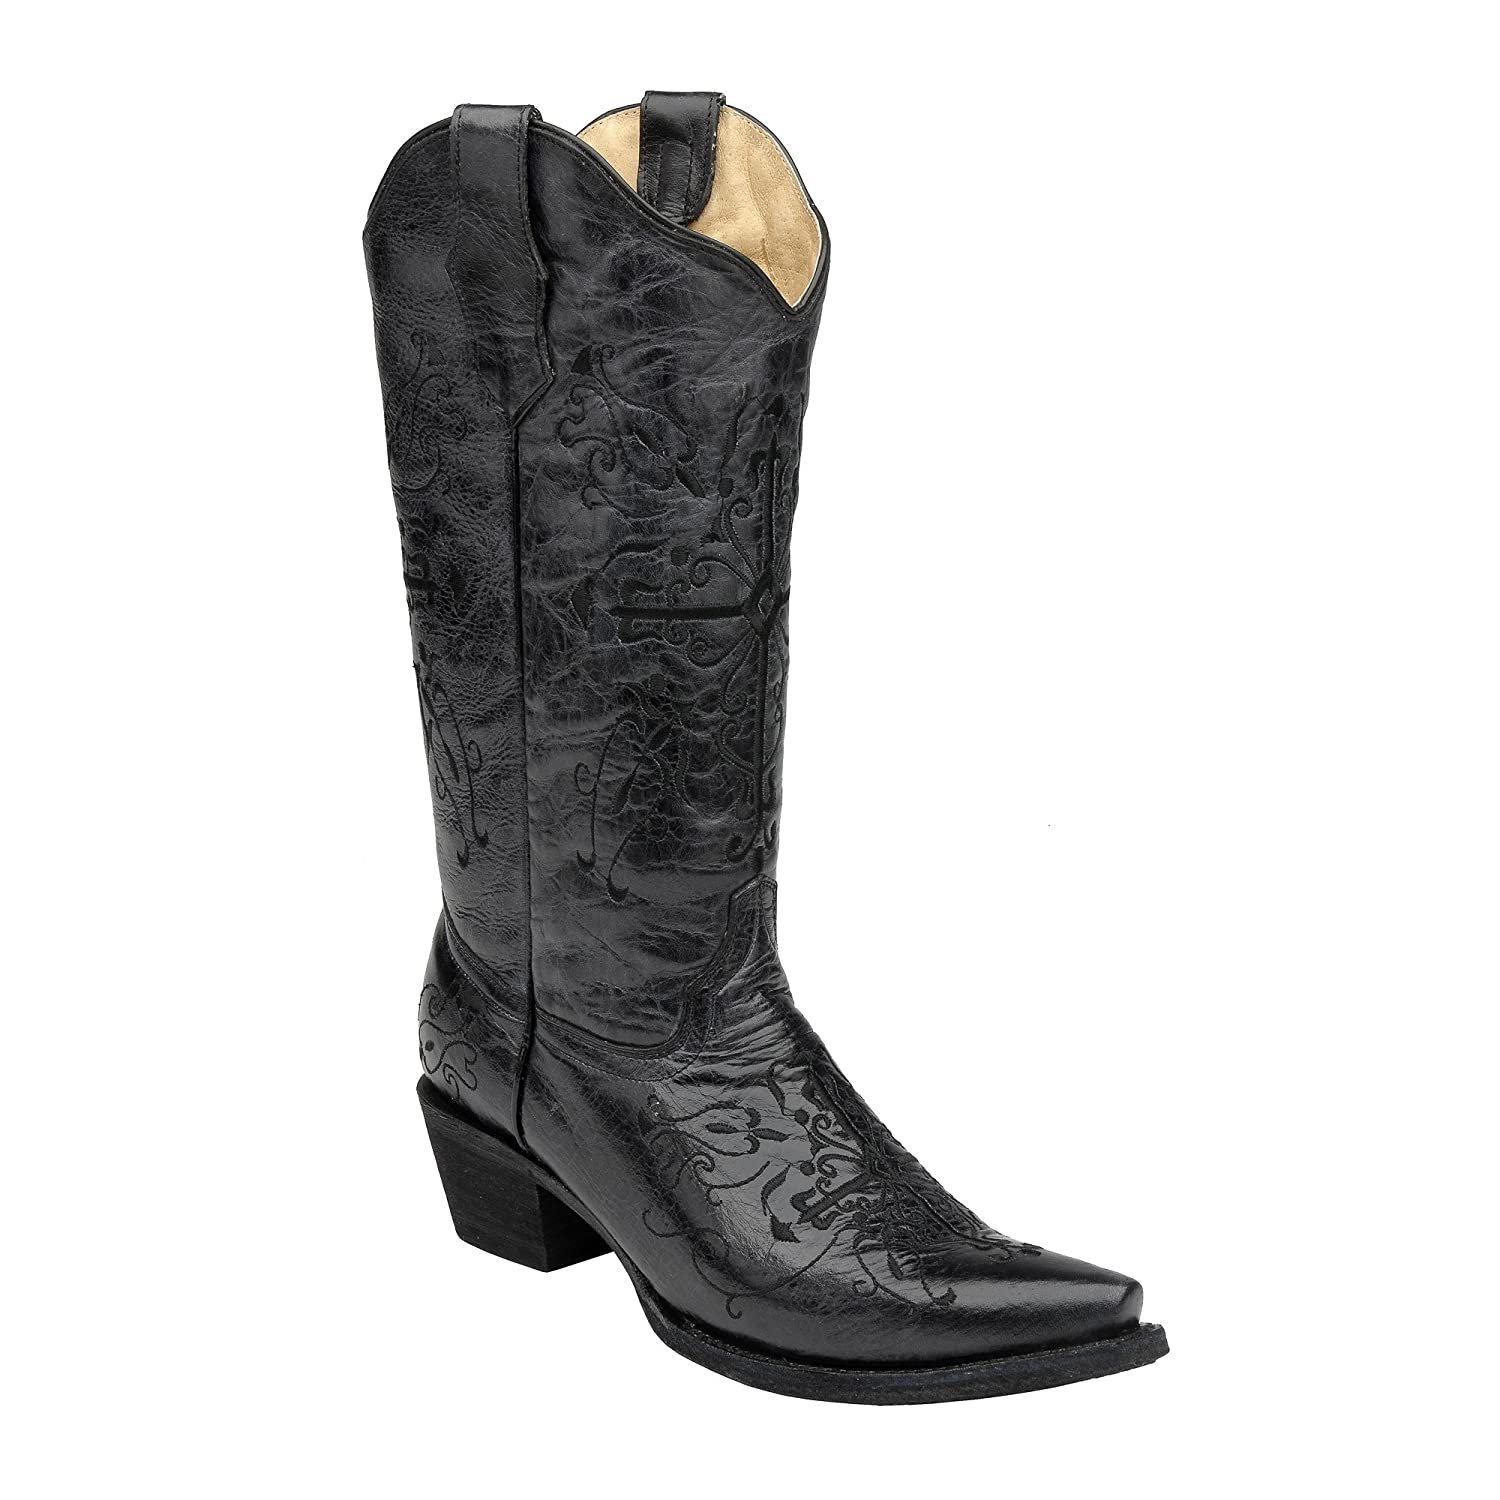 c718e194dc3 Corral Women's Circle G Cross Embroidery Snip Toe Western Cowboy Boots Black